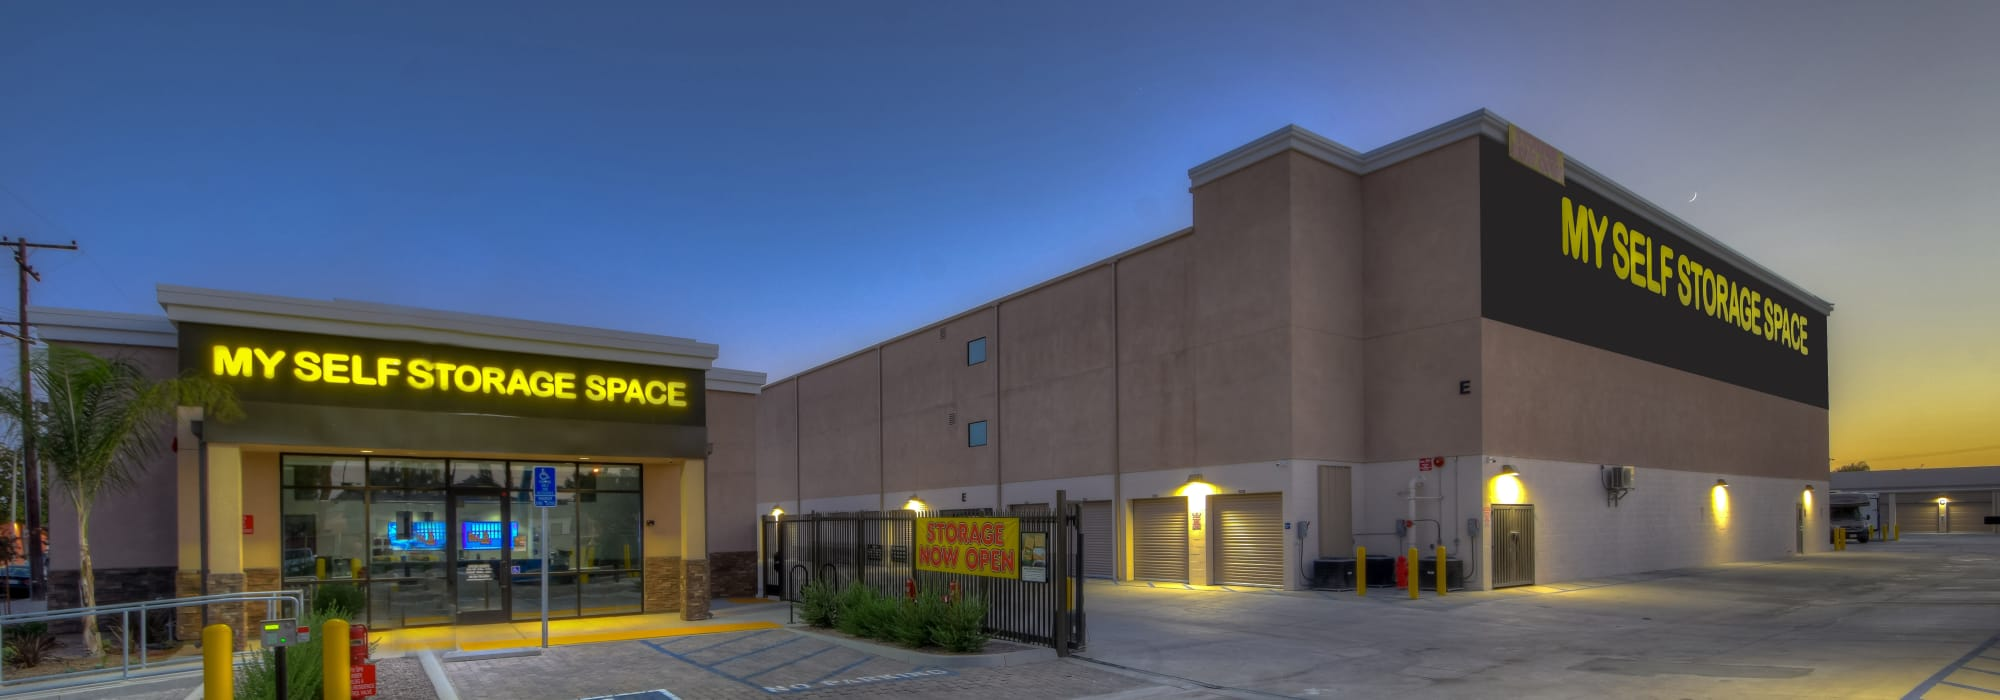 My Self Storage Space in Fullerton, California